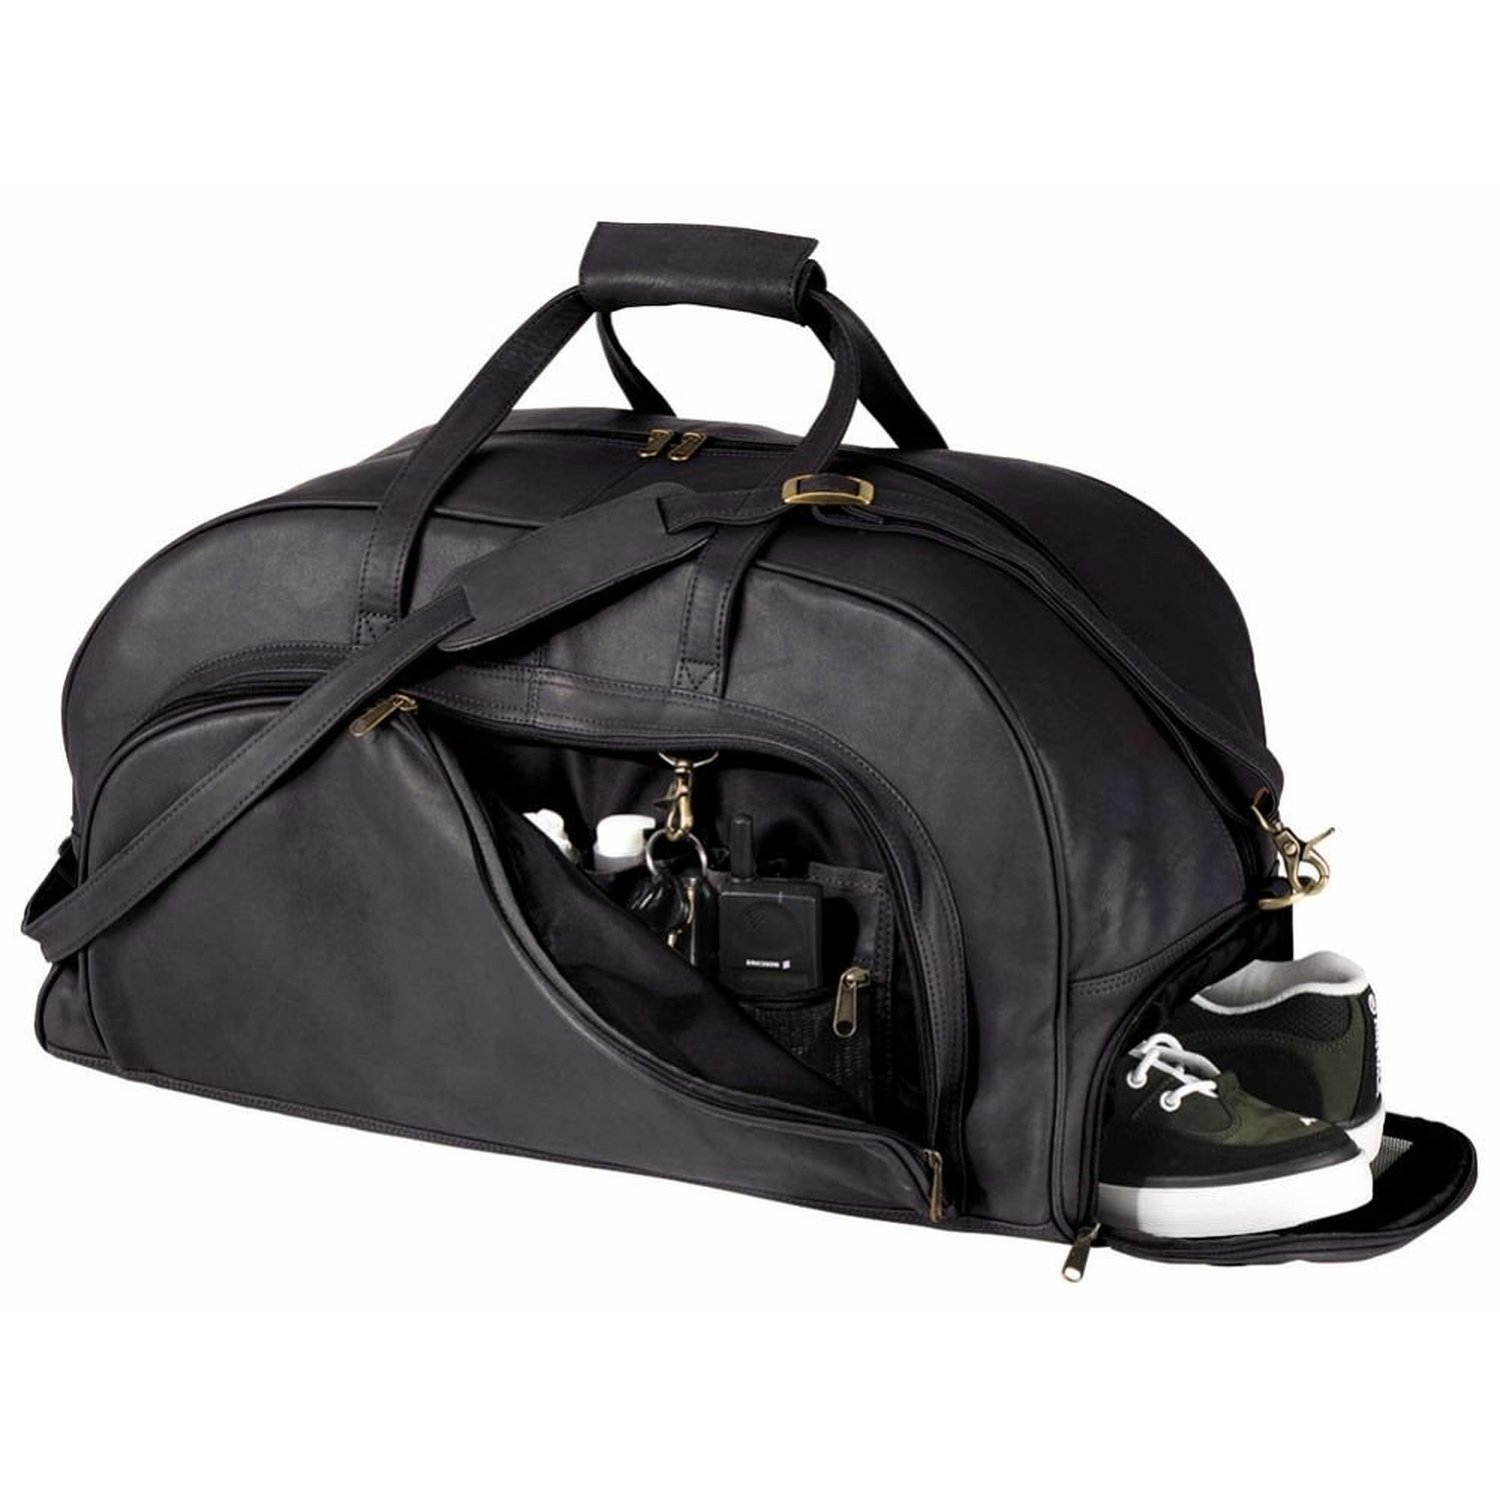 Royce Leather Organizer Duffel Bag with Shoe Compartment, Black